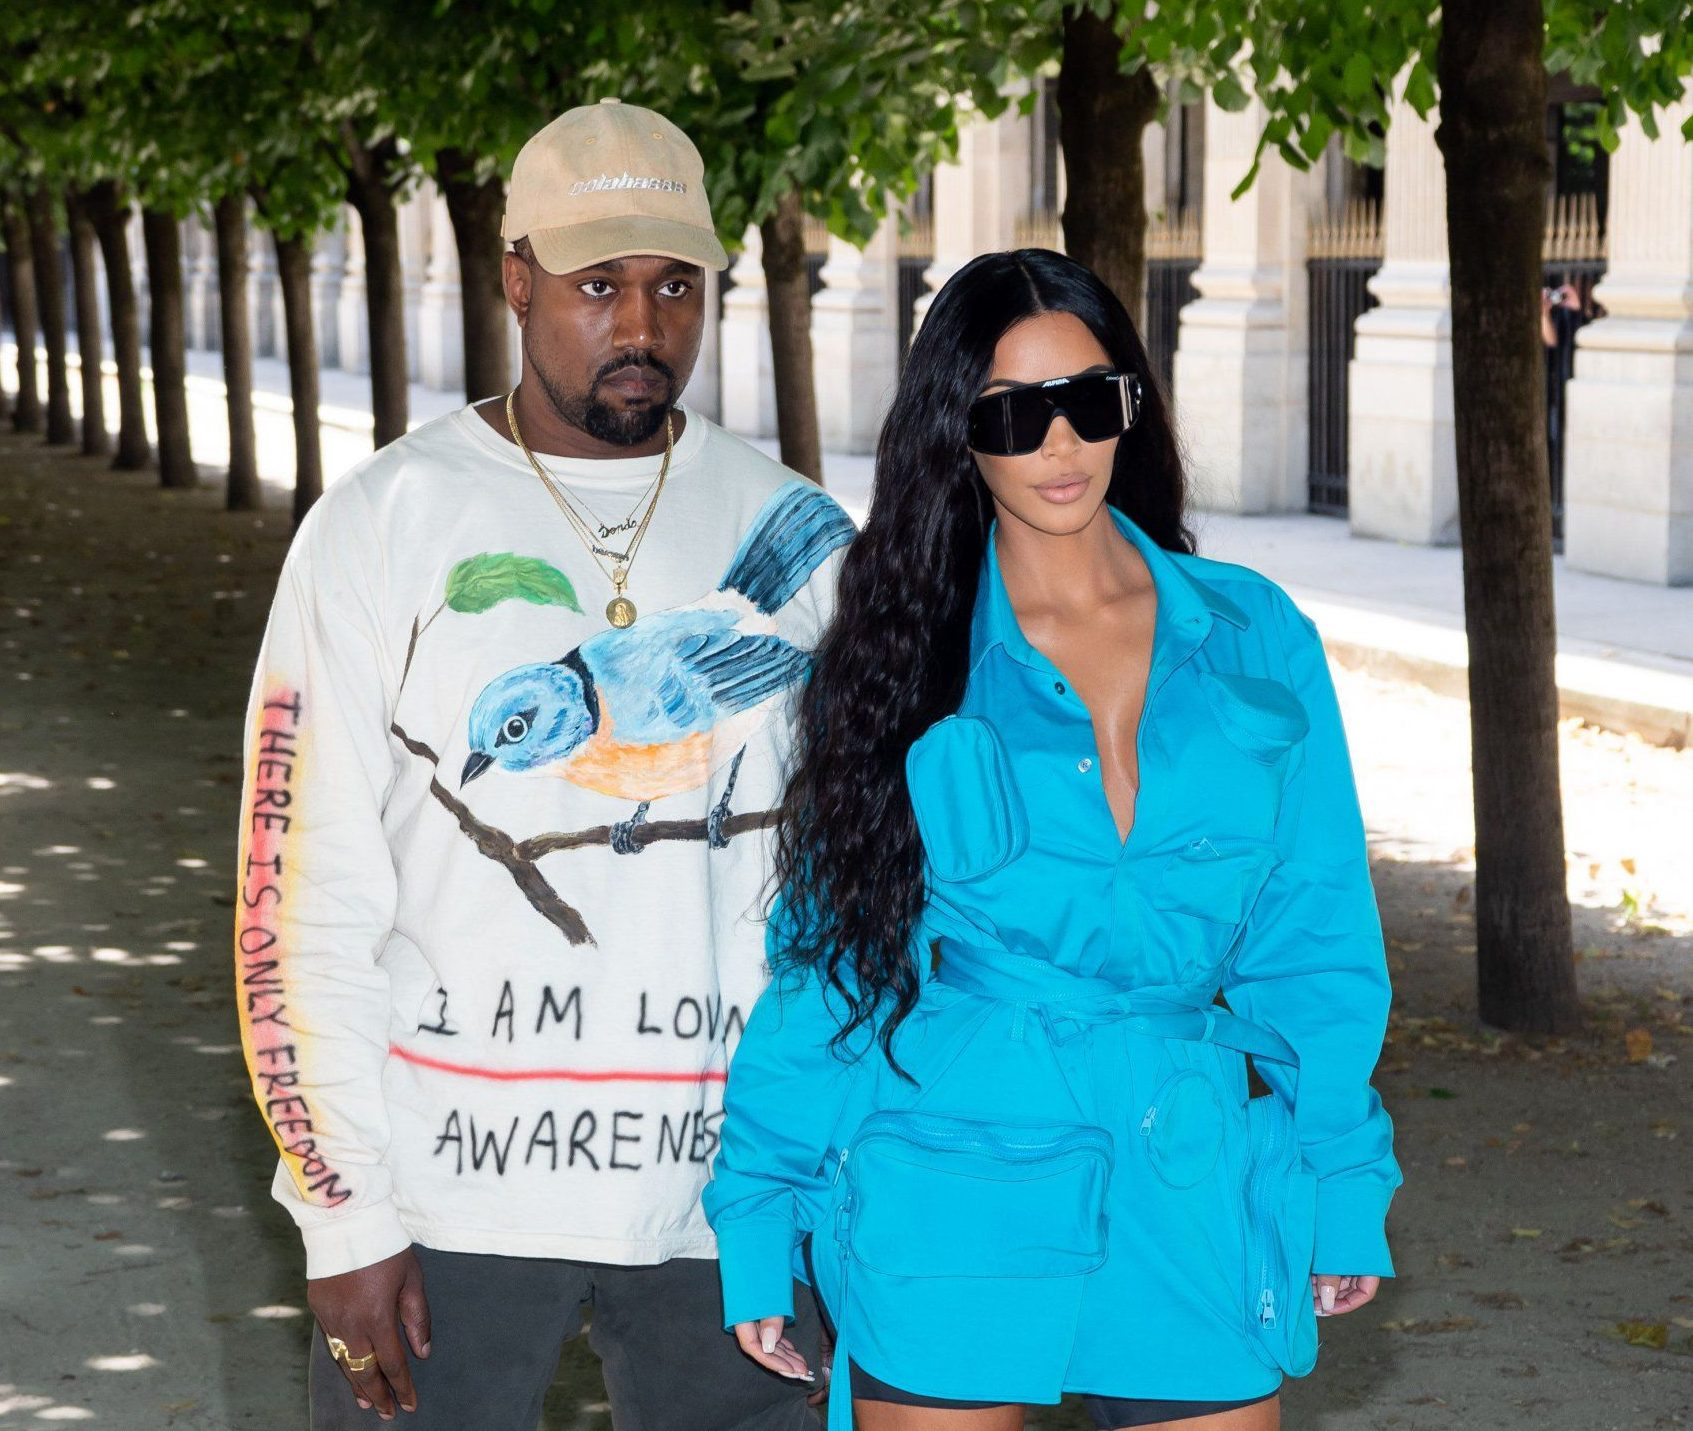 Mandatory Credit: Photo by Laurent VU/SIPA/REX/Shutterstock (9723968s) Kanye West and Kim Kardashian in the front row Louis Vuitton show, Front Row, Spring Summer 2019, Paris Fashion Week Men's, France - 21 Jun 2018